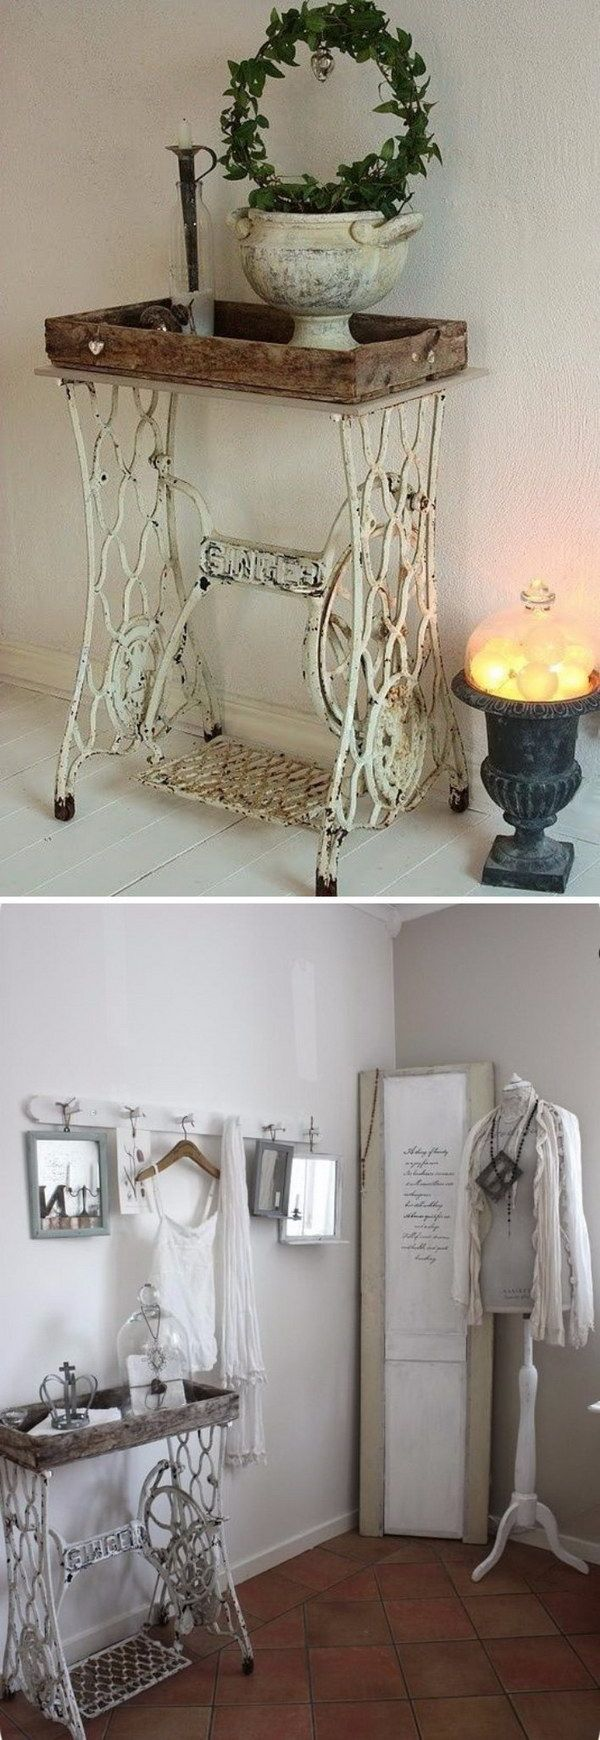 52 Awesome Shabby Chic Decor DIY Ideas & Projects | Sewing ...